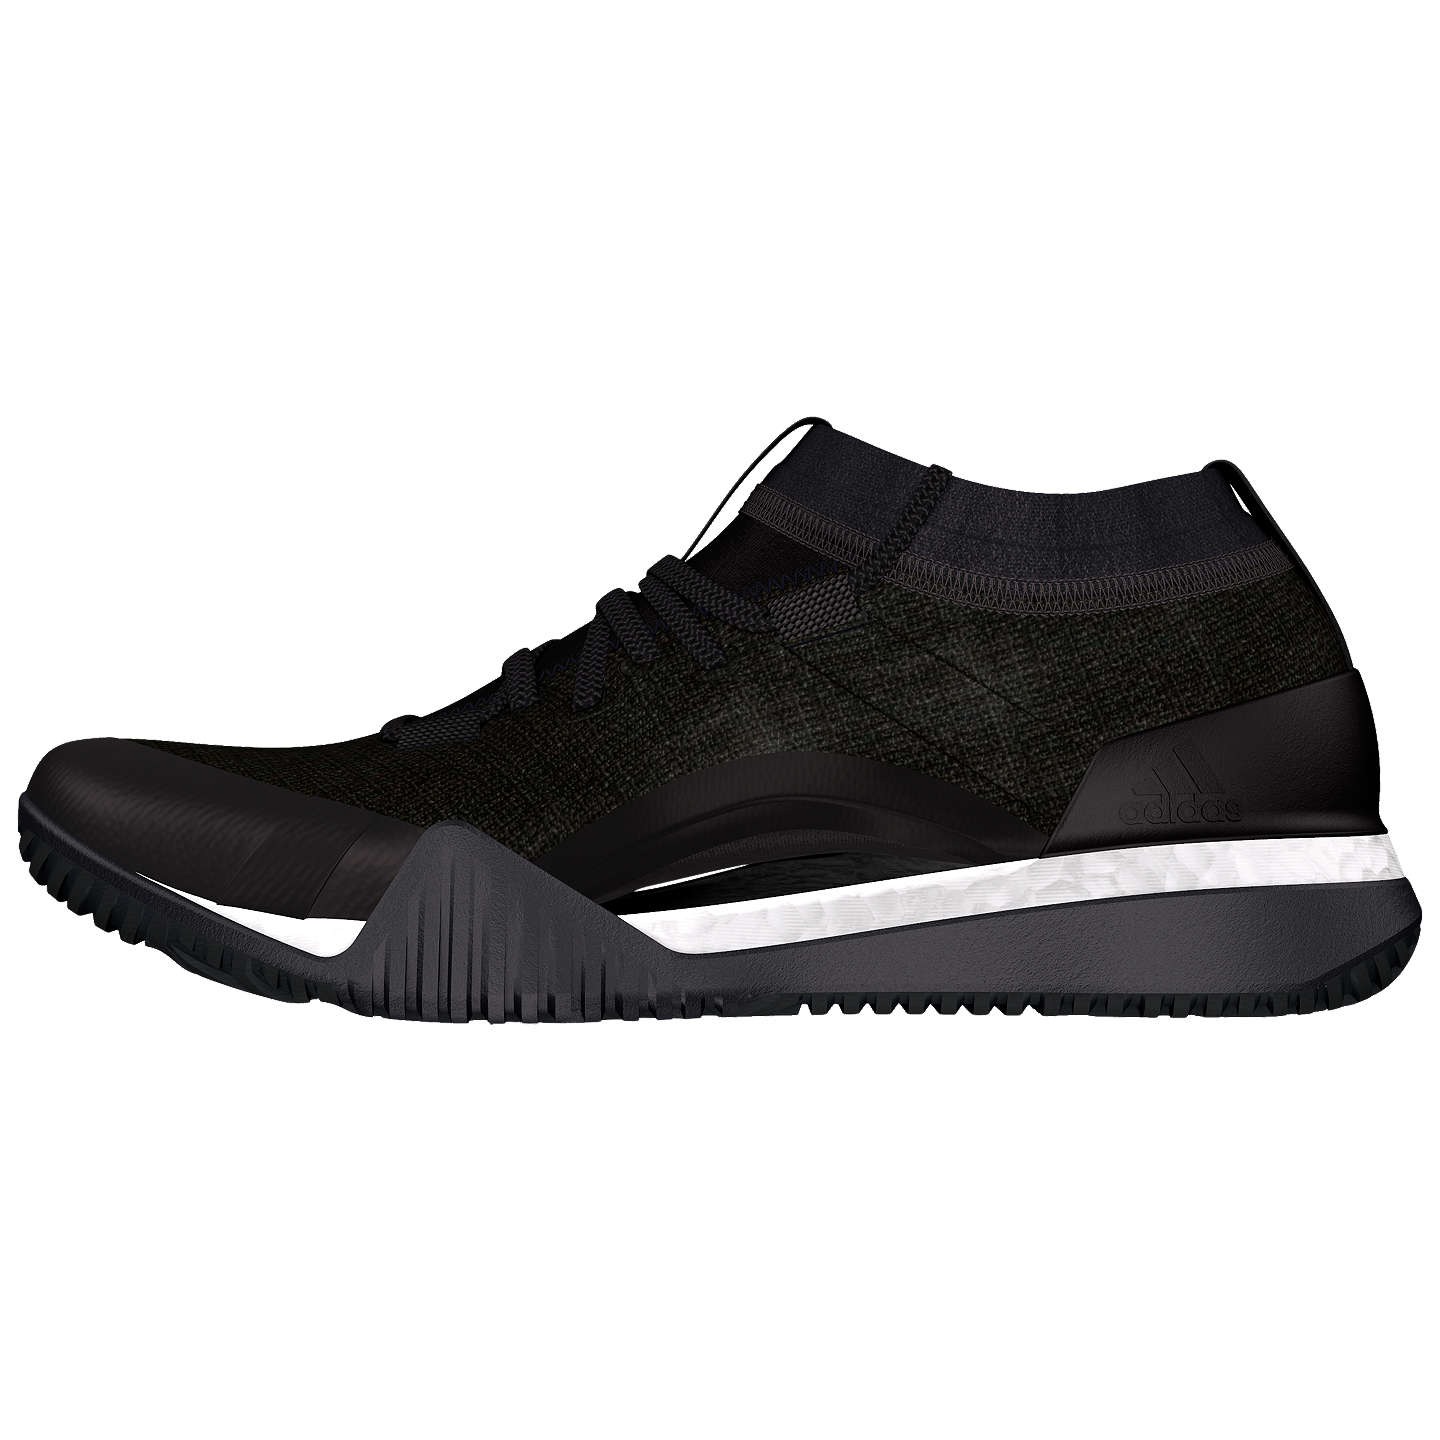 Buyadidas Pure Boost X TR3 Training Shoes, Black, 4 Online at johnlewis.com  ...